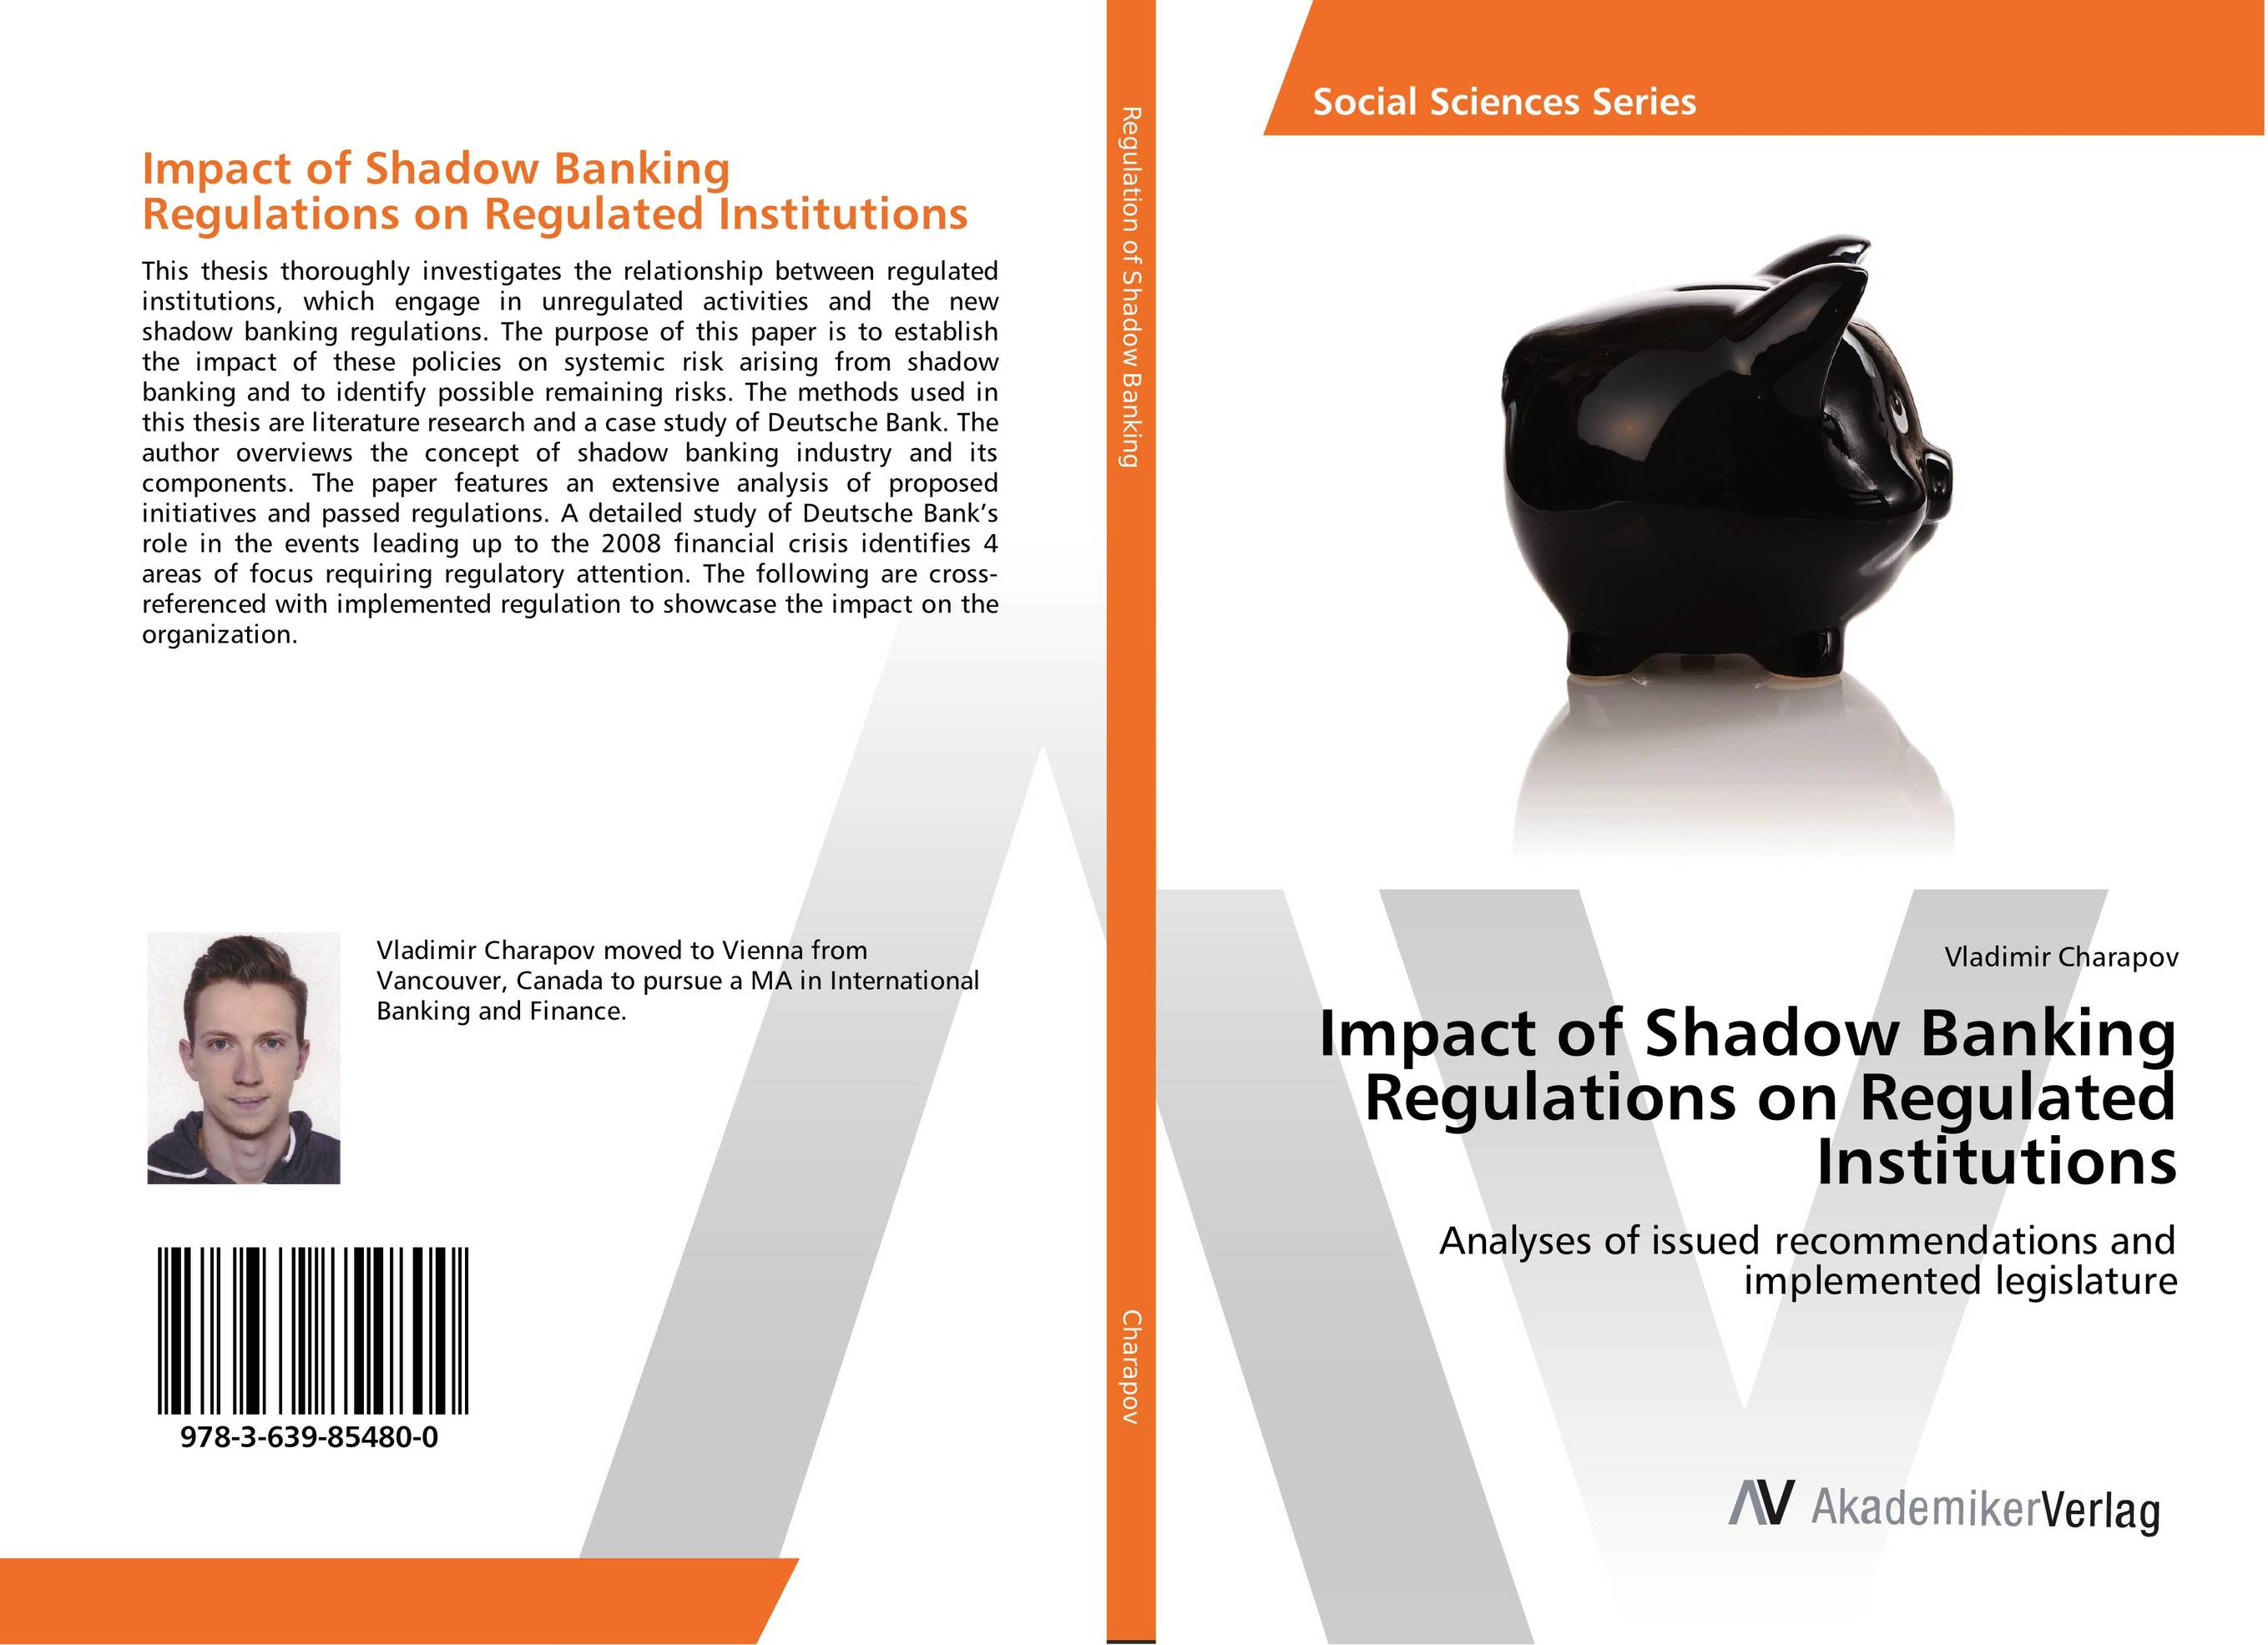 Impact of Shadow Banking Regulations on Regulated Institutions куплю задние стекло б у opel vectra a